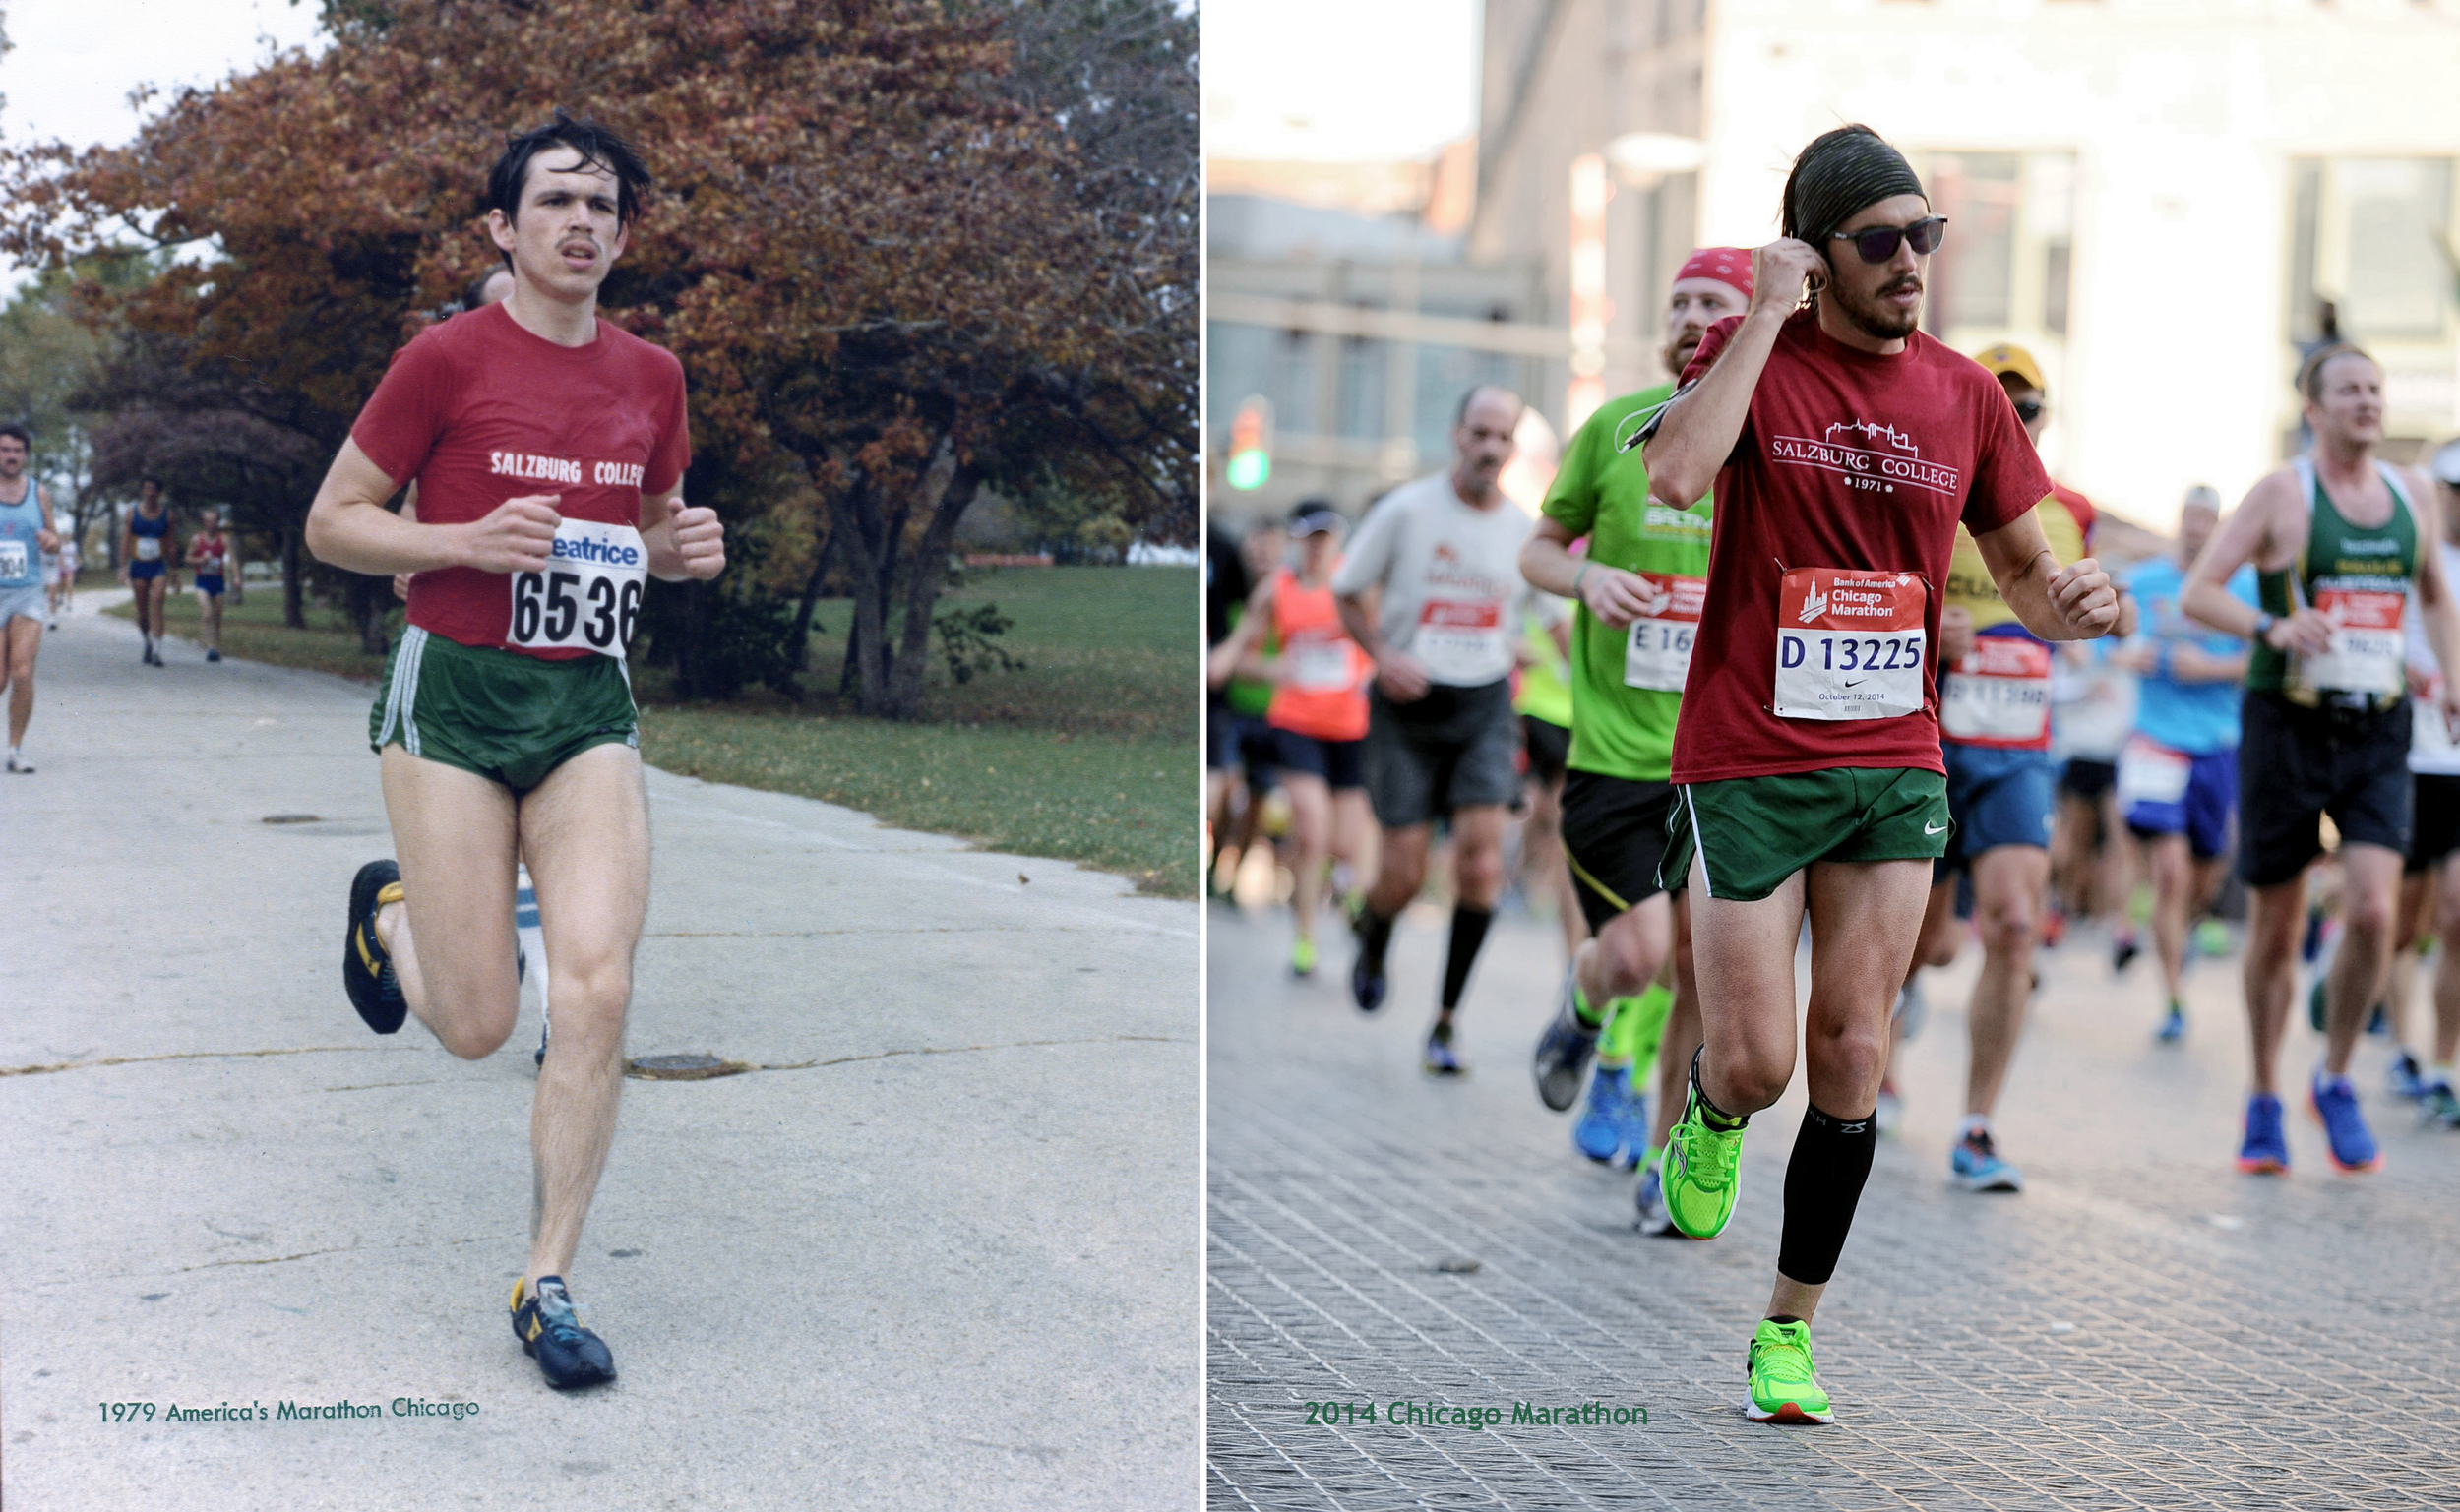 As as kid I can remember digging through an old photo album and holding a 8x10 print of my father running the Chicago marathon in 1979 at the age of 21 and distinctively wanting to replicate the exact photo. So when I qualified for the race earlier this Spring, I didn't hesitate to sign up.     The conditions made it extremely daunting in preparing for this marathon. Over the four months training in Atlantic Beach, FL, I battled humidity percentages equaling the temperature-day in, day out and I didn't have a gym membership so all 600+ miles I ran were on the street and beaches. But it made good practice on the morning of October 12 when the race started in 45 degree weather.   Finished 6,678 / 45,000.  | 3:39